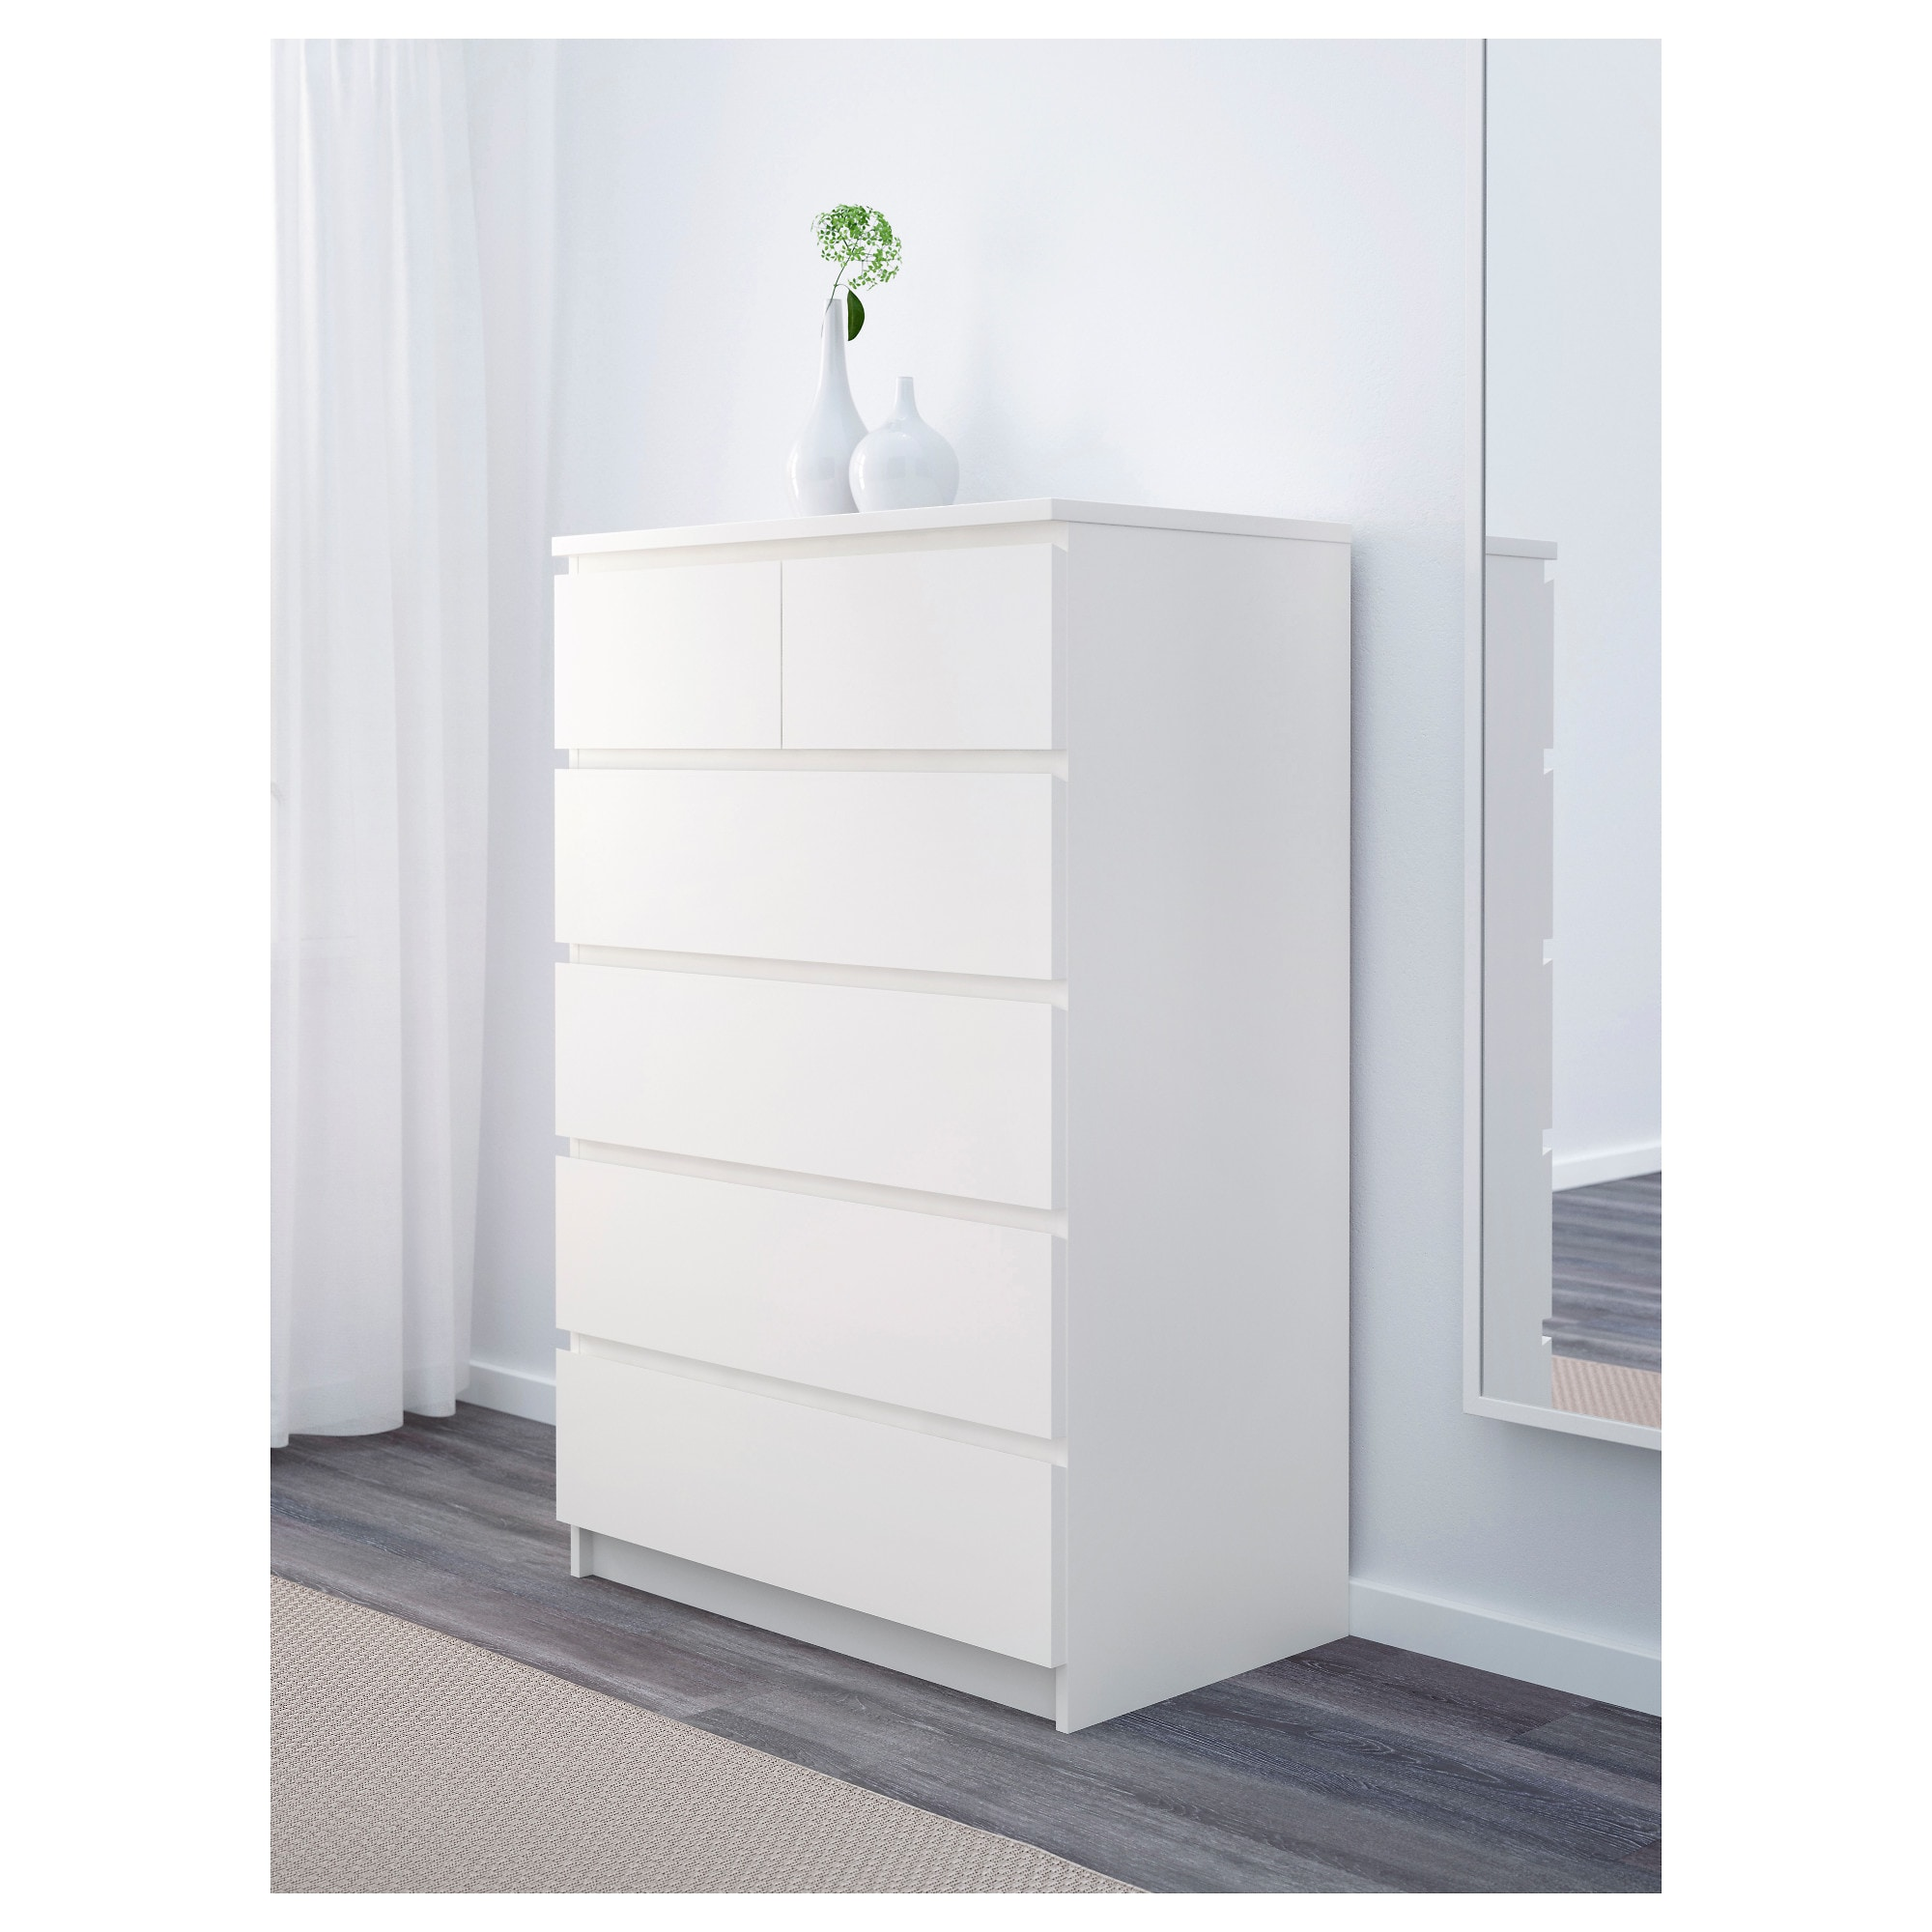 Malm Kommode Shabby Chic Malm Kommode Mit 6 Schubladen Weiß In 2019 Products 6 Drawer